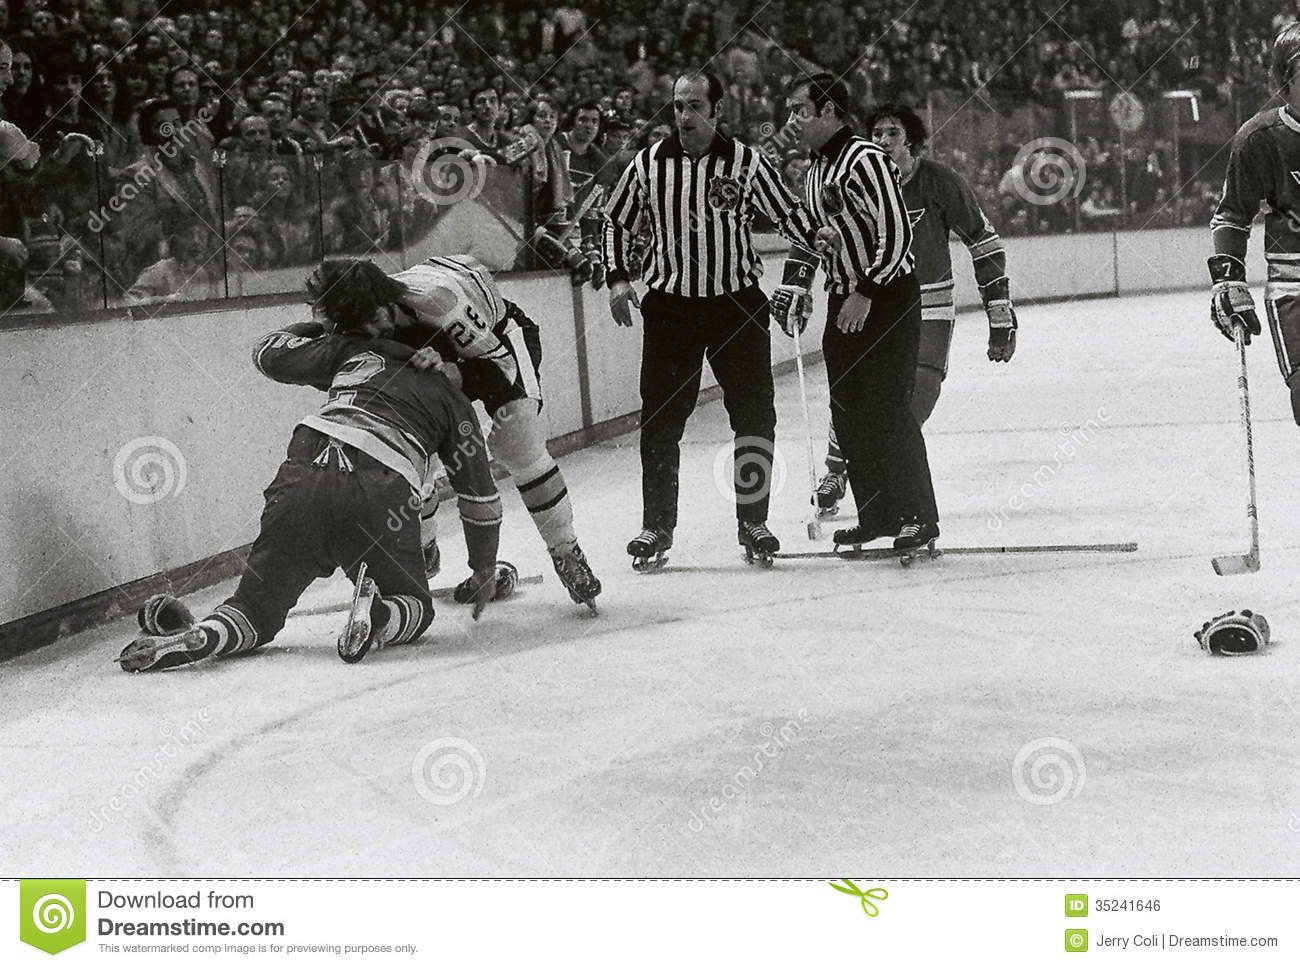 Vintage hockey picture